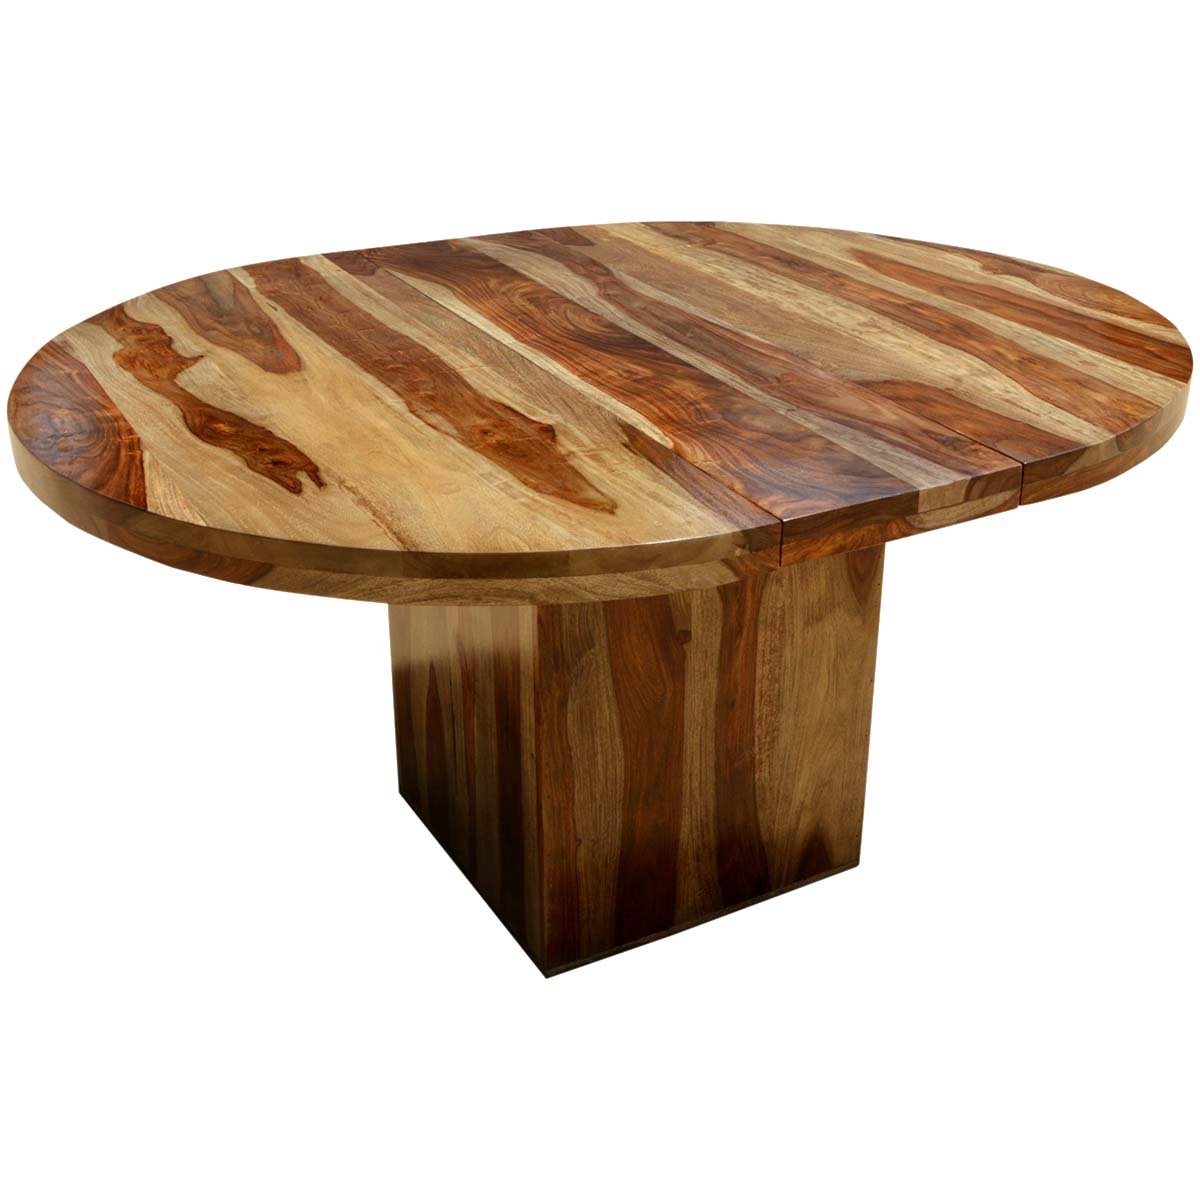 Circle on the square solid wood round dining table w extension for Round extension dining table